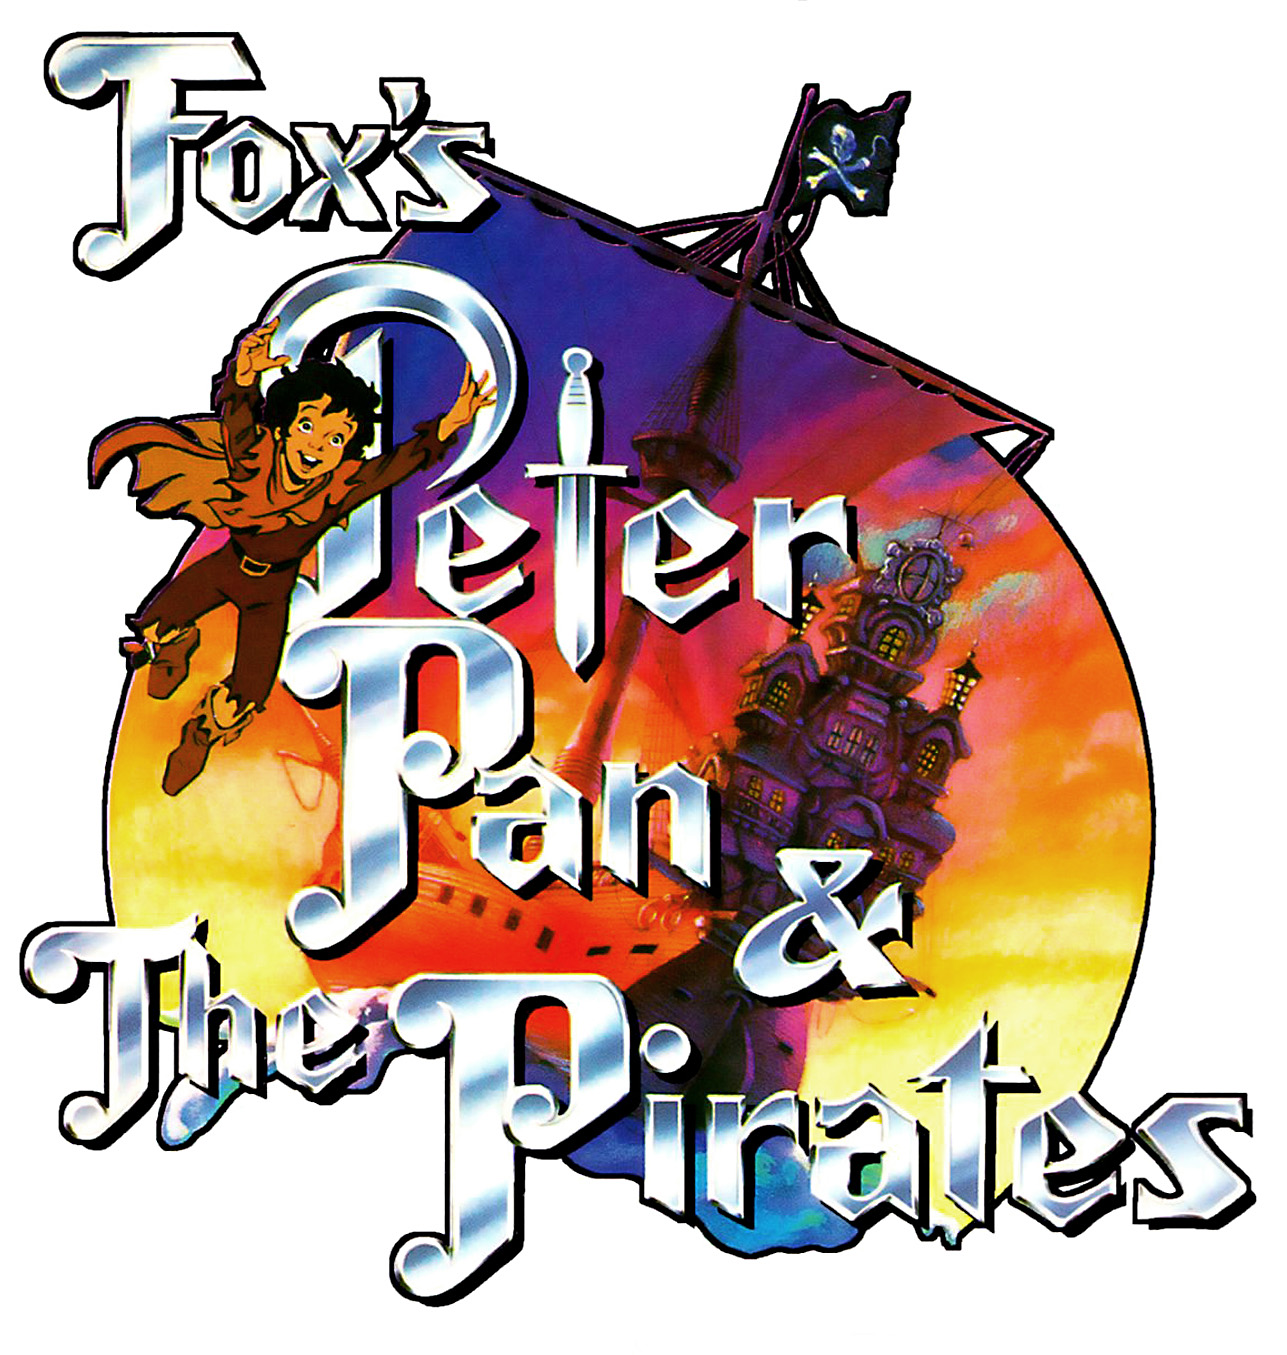 Peter Pan y los piratas